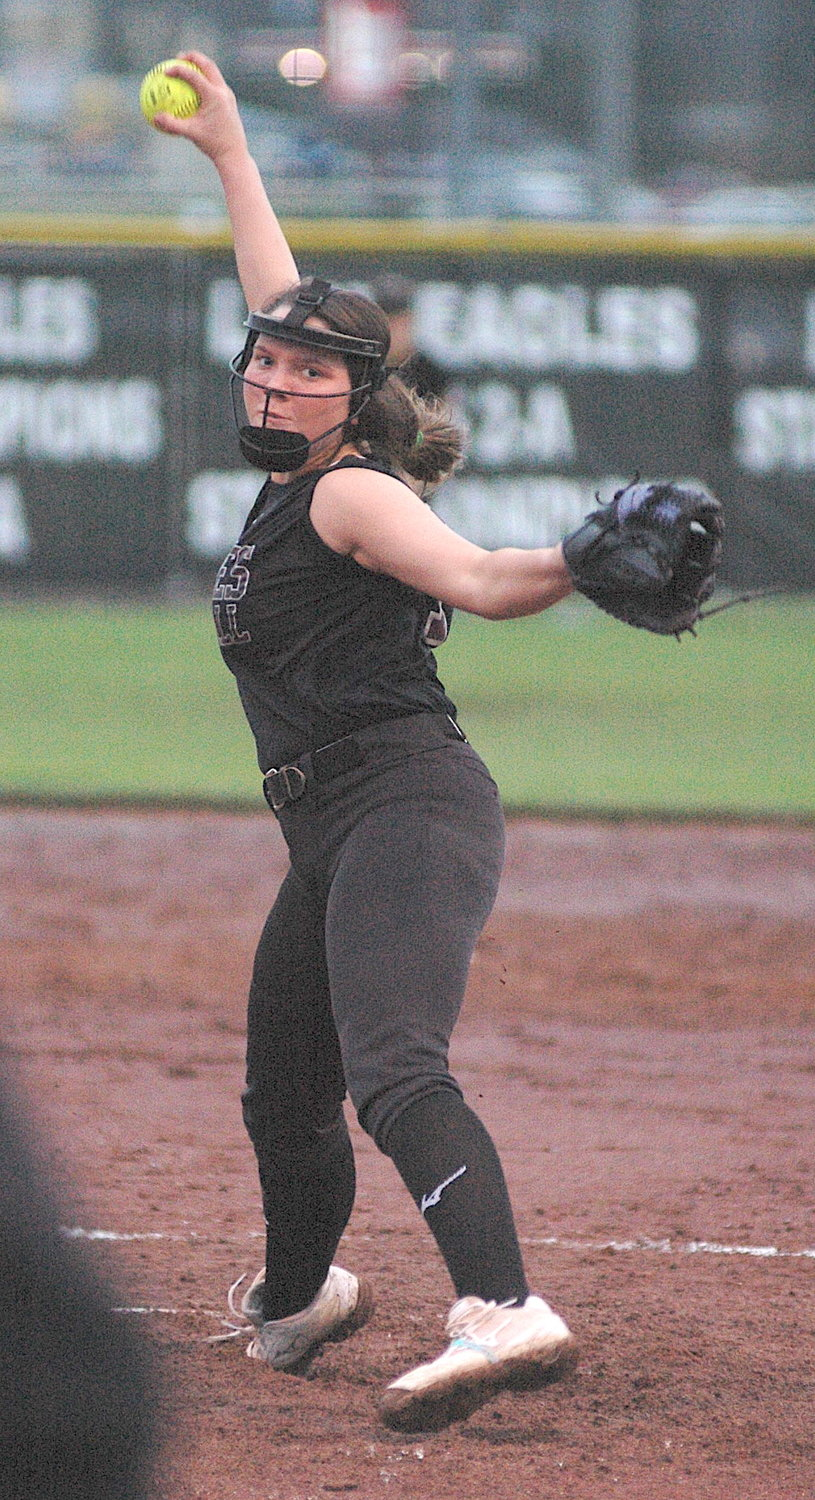 Sumiton Christian's Ballie Hall throws a pitch against Carbon Hill Tuesday.